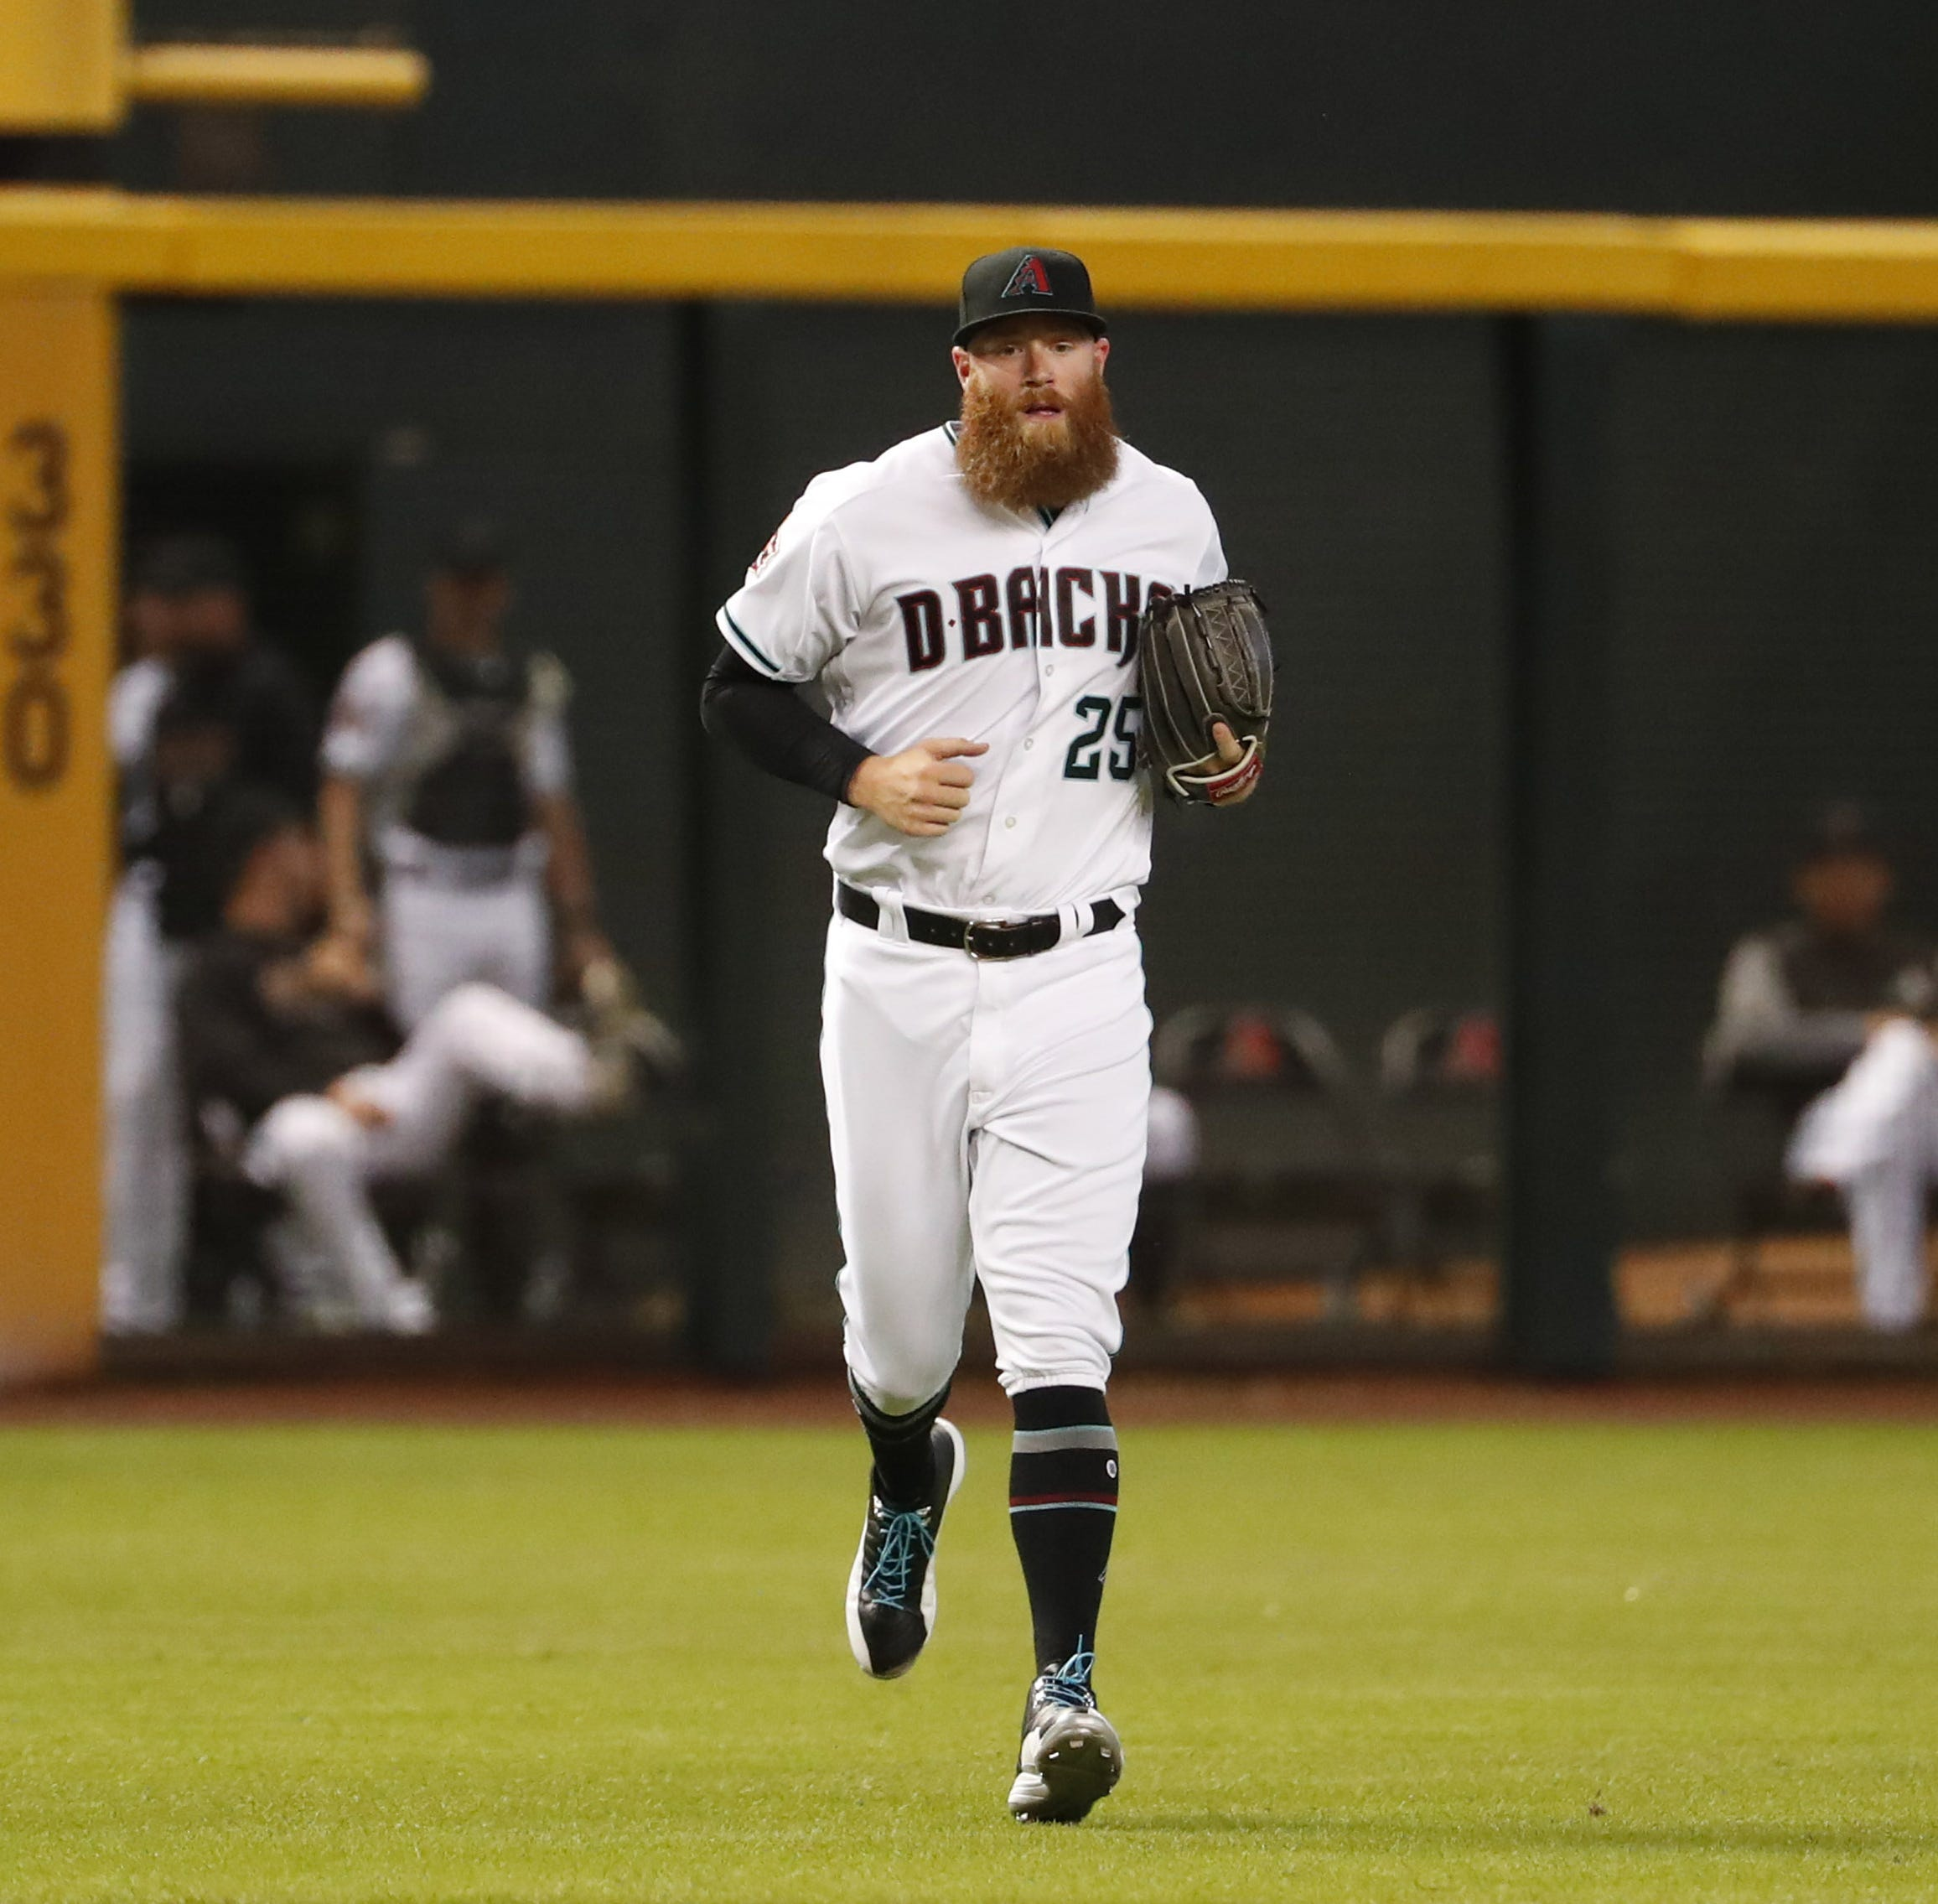 Starting? Closing? Searching for meaning in Diamondbacks pitcher Archie Bradley's tweets